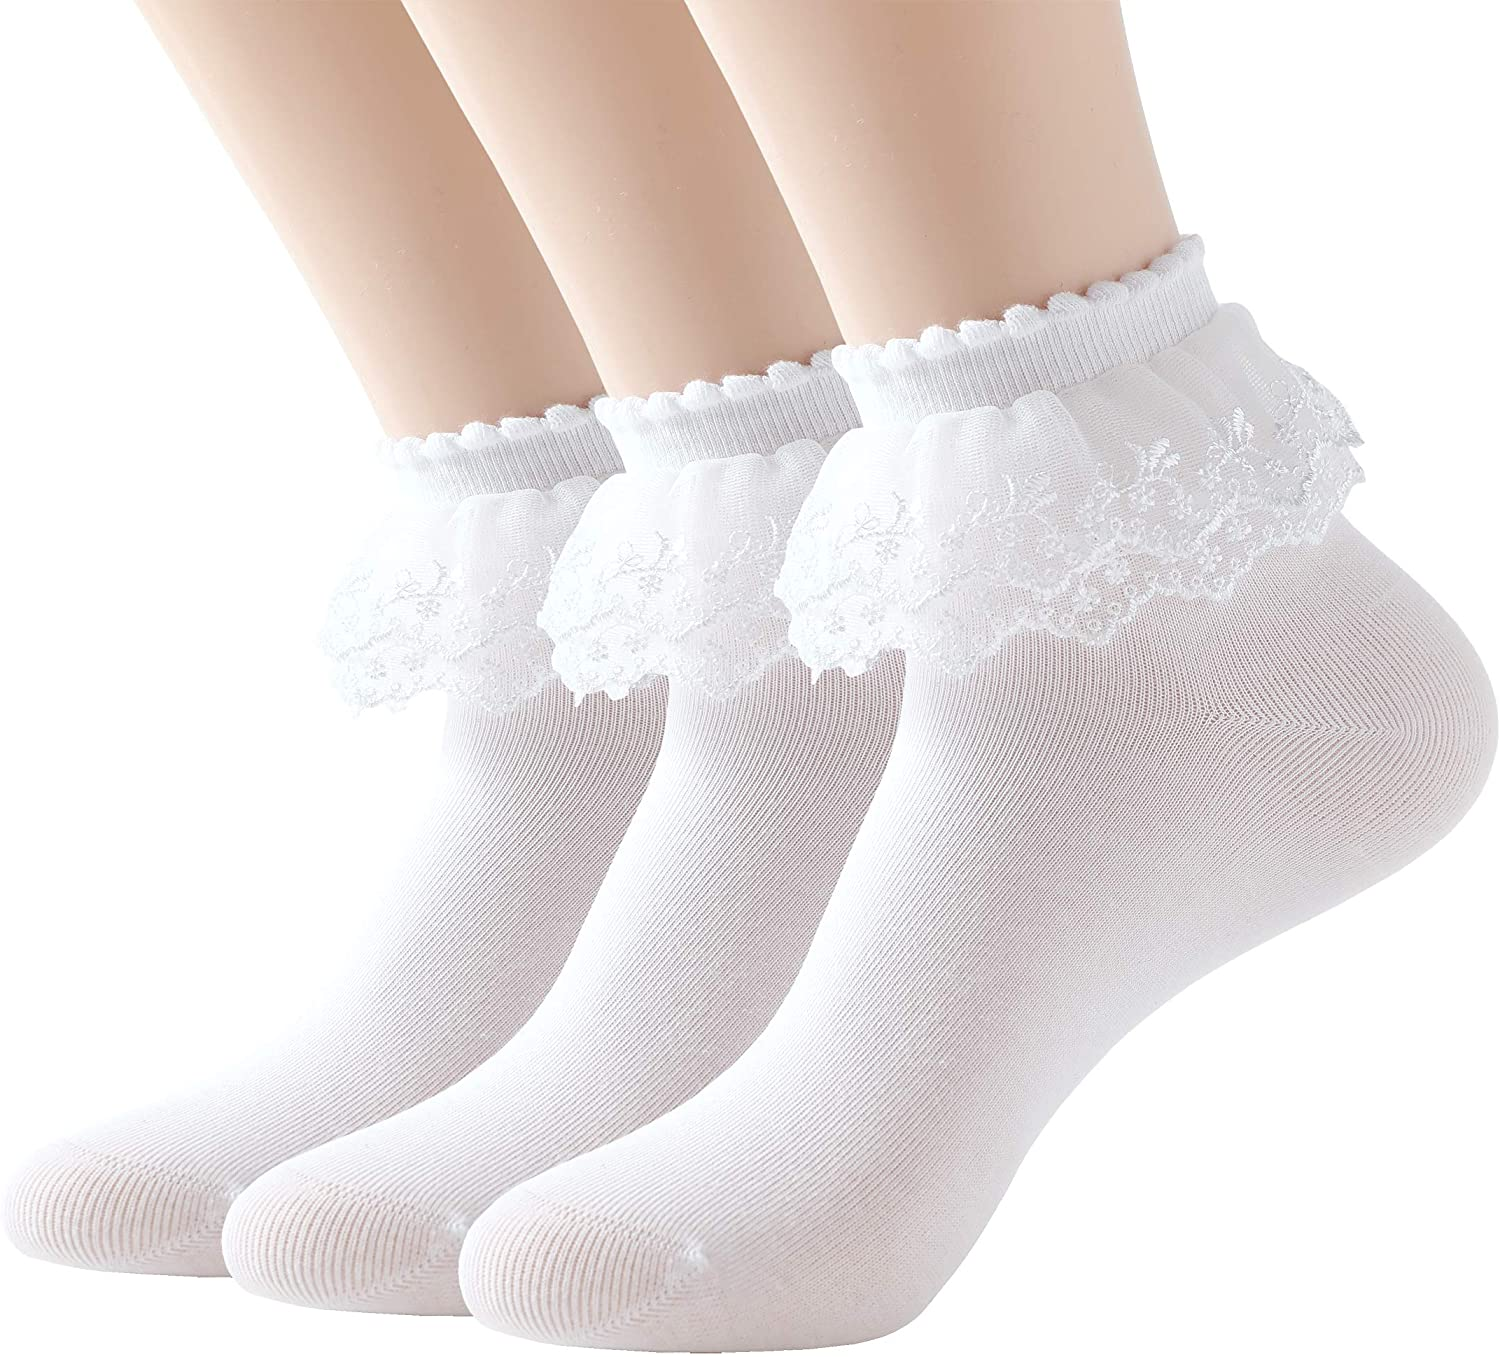 SRYL Women Ankle Socks,Lace Ruffle Frilly Cotton Socks Trim Double Layer Lace,Princess Socks Dress Socks H08